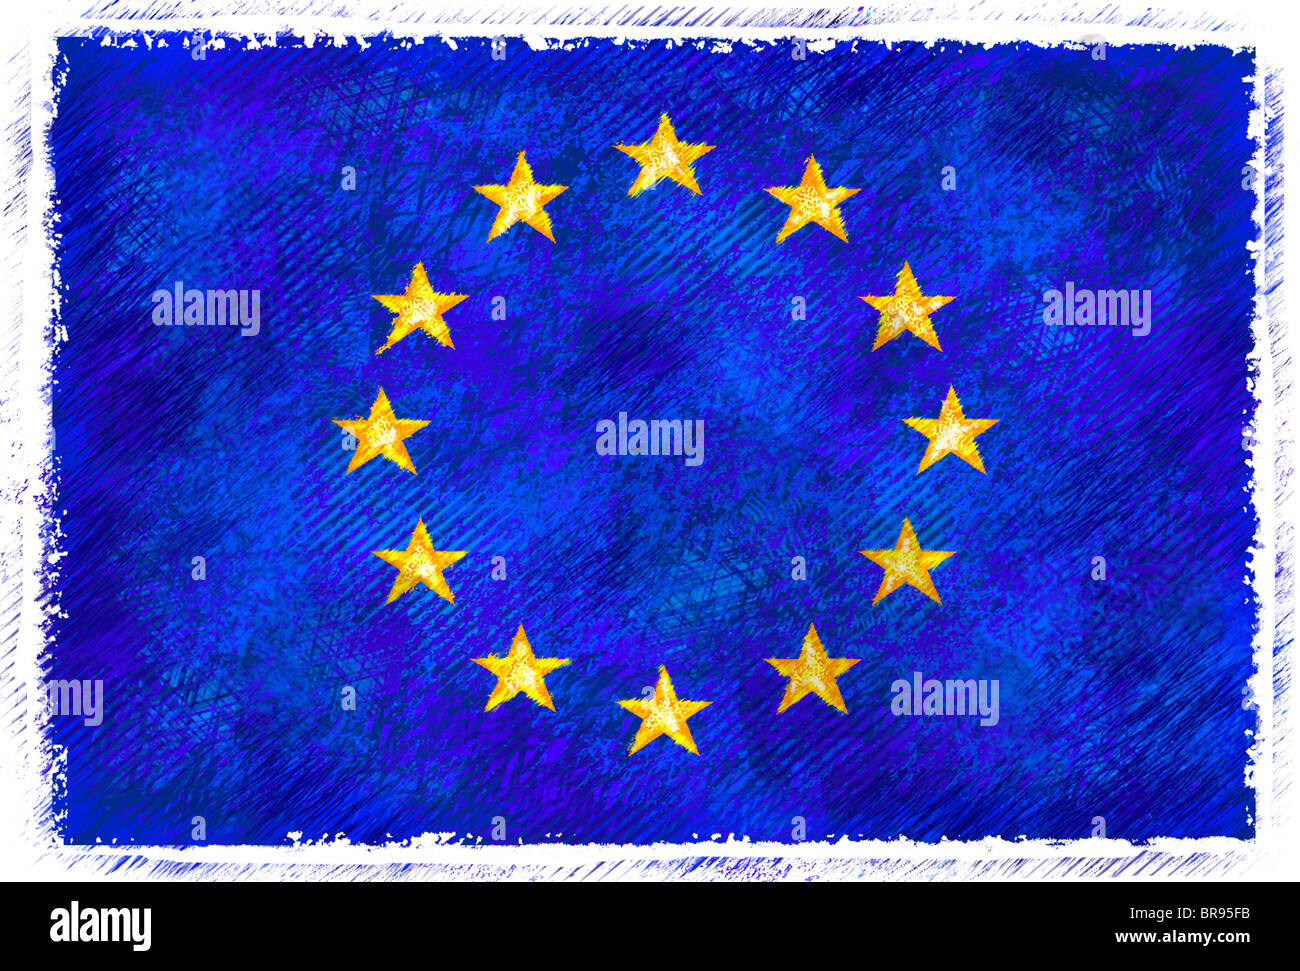 Drawing of the flag of European Union - Stock Image